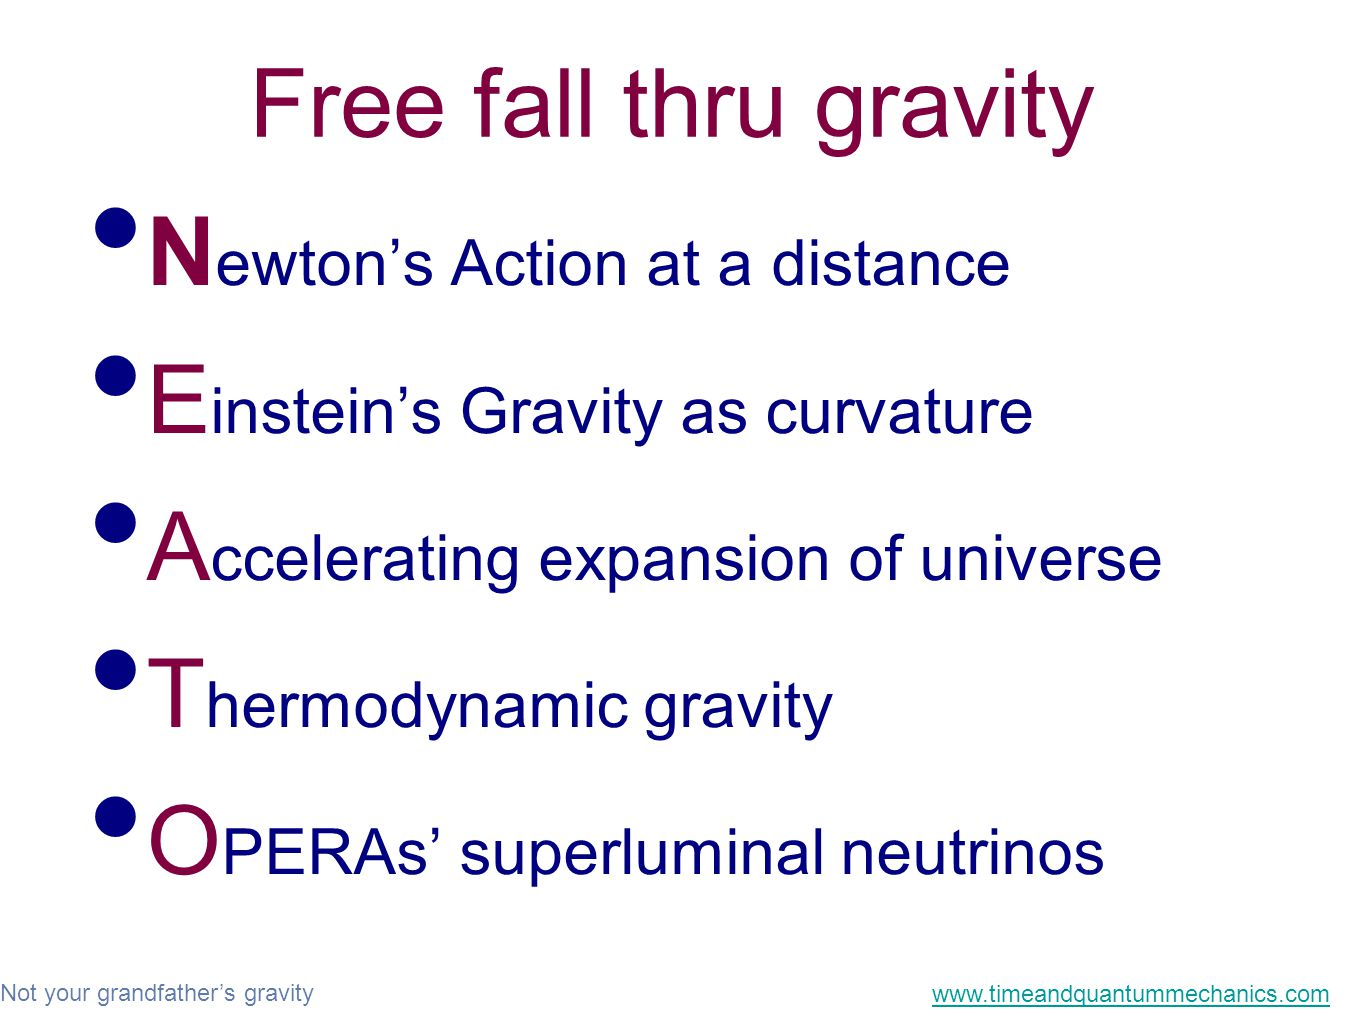 Not your grandfather's gravity www.timeandquantummechanics.com Free fall thru gravity N ewton's Action at a distance E instein's Gravity as curvature A ccelerating expansion of universe T hermodynamic gravity O PERAs' superluminal neutrinos